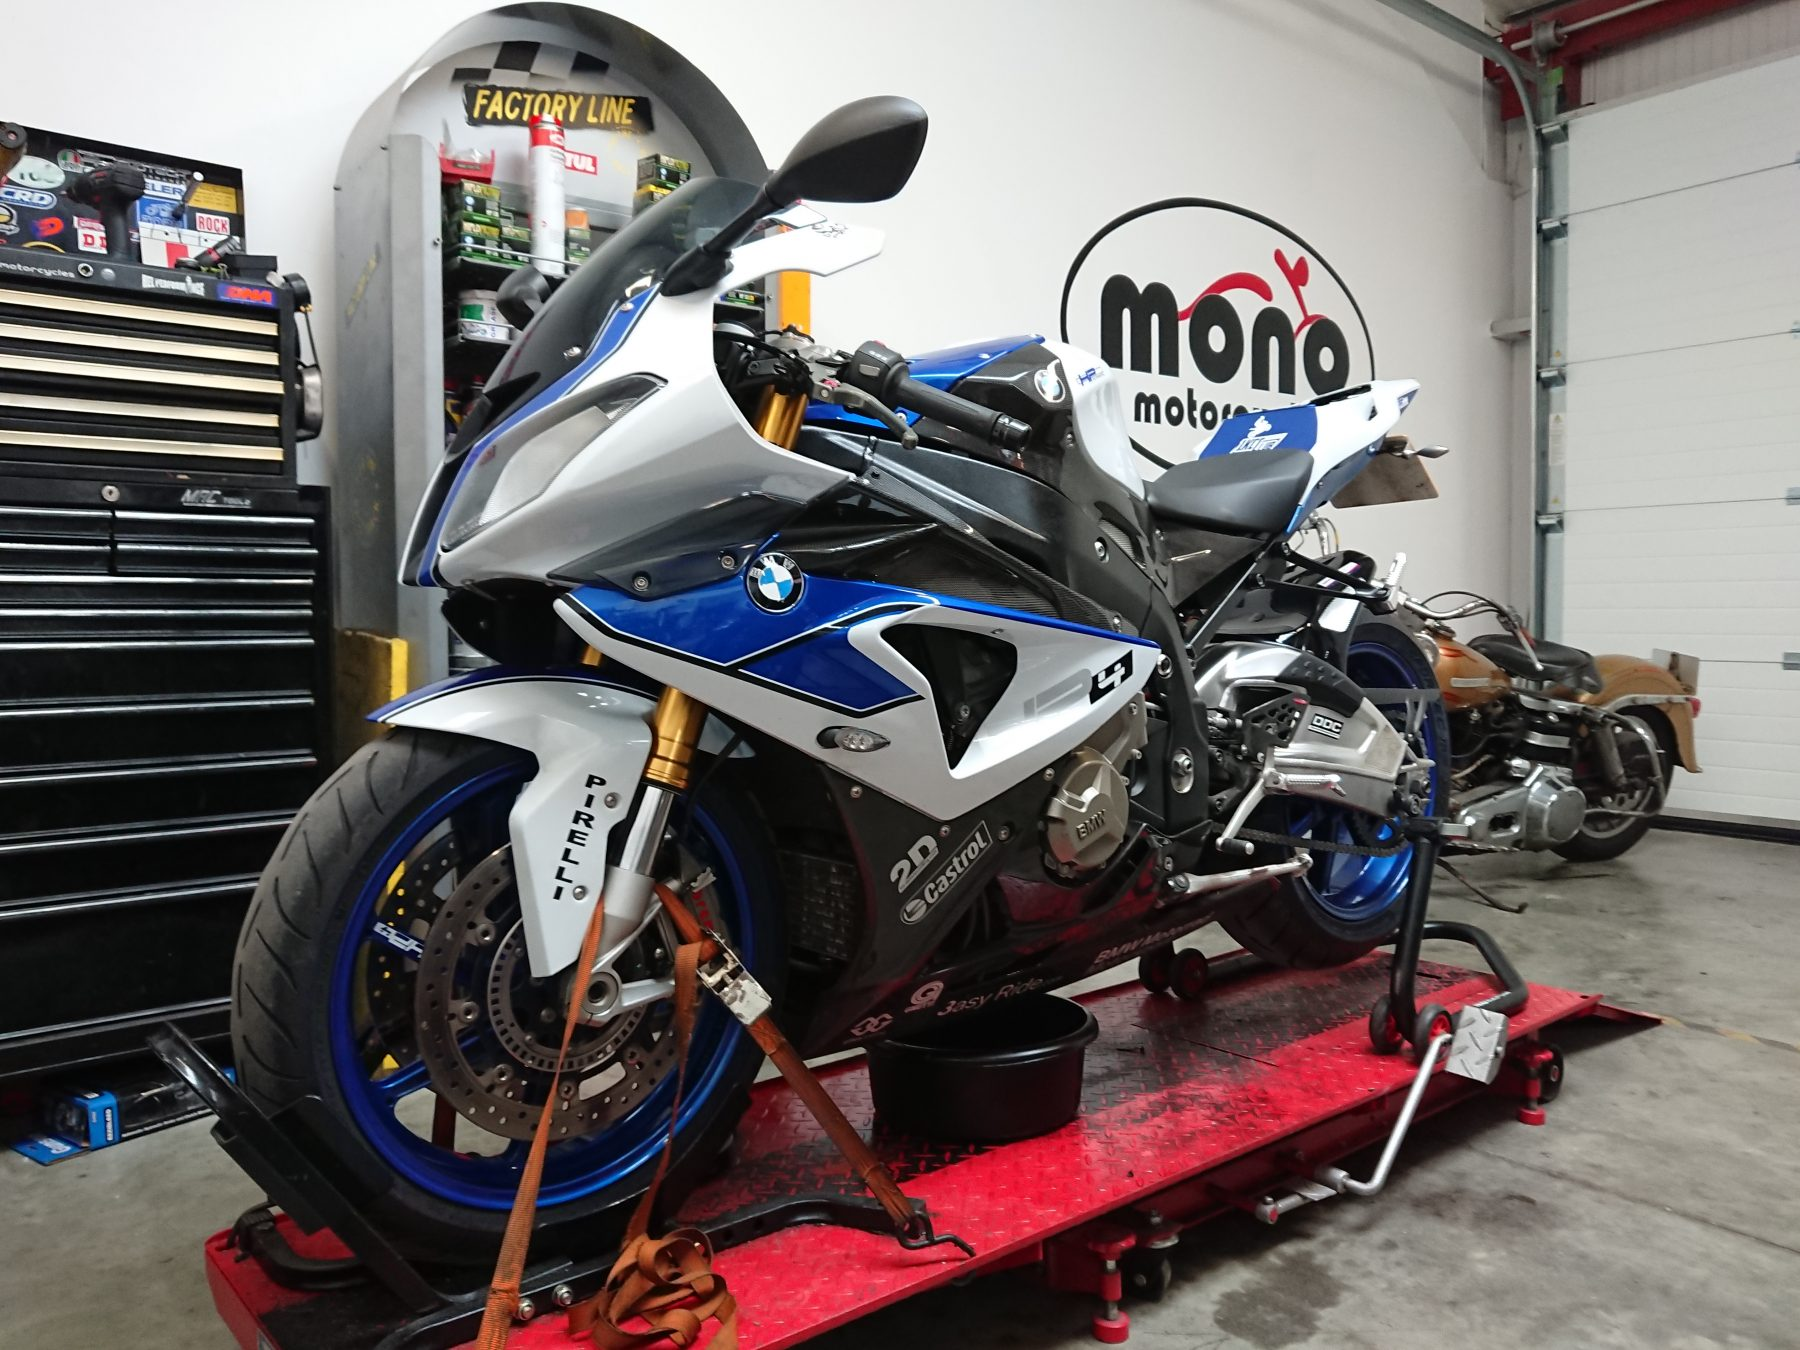 The BMW S1000RR HP4 joined us for servicing & quickshifter reset.